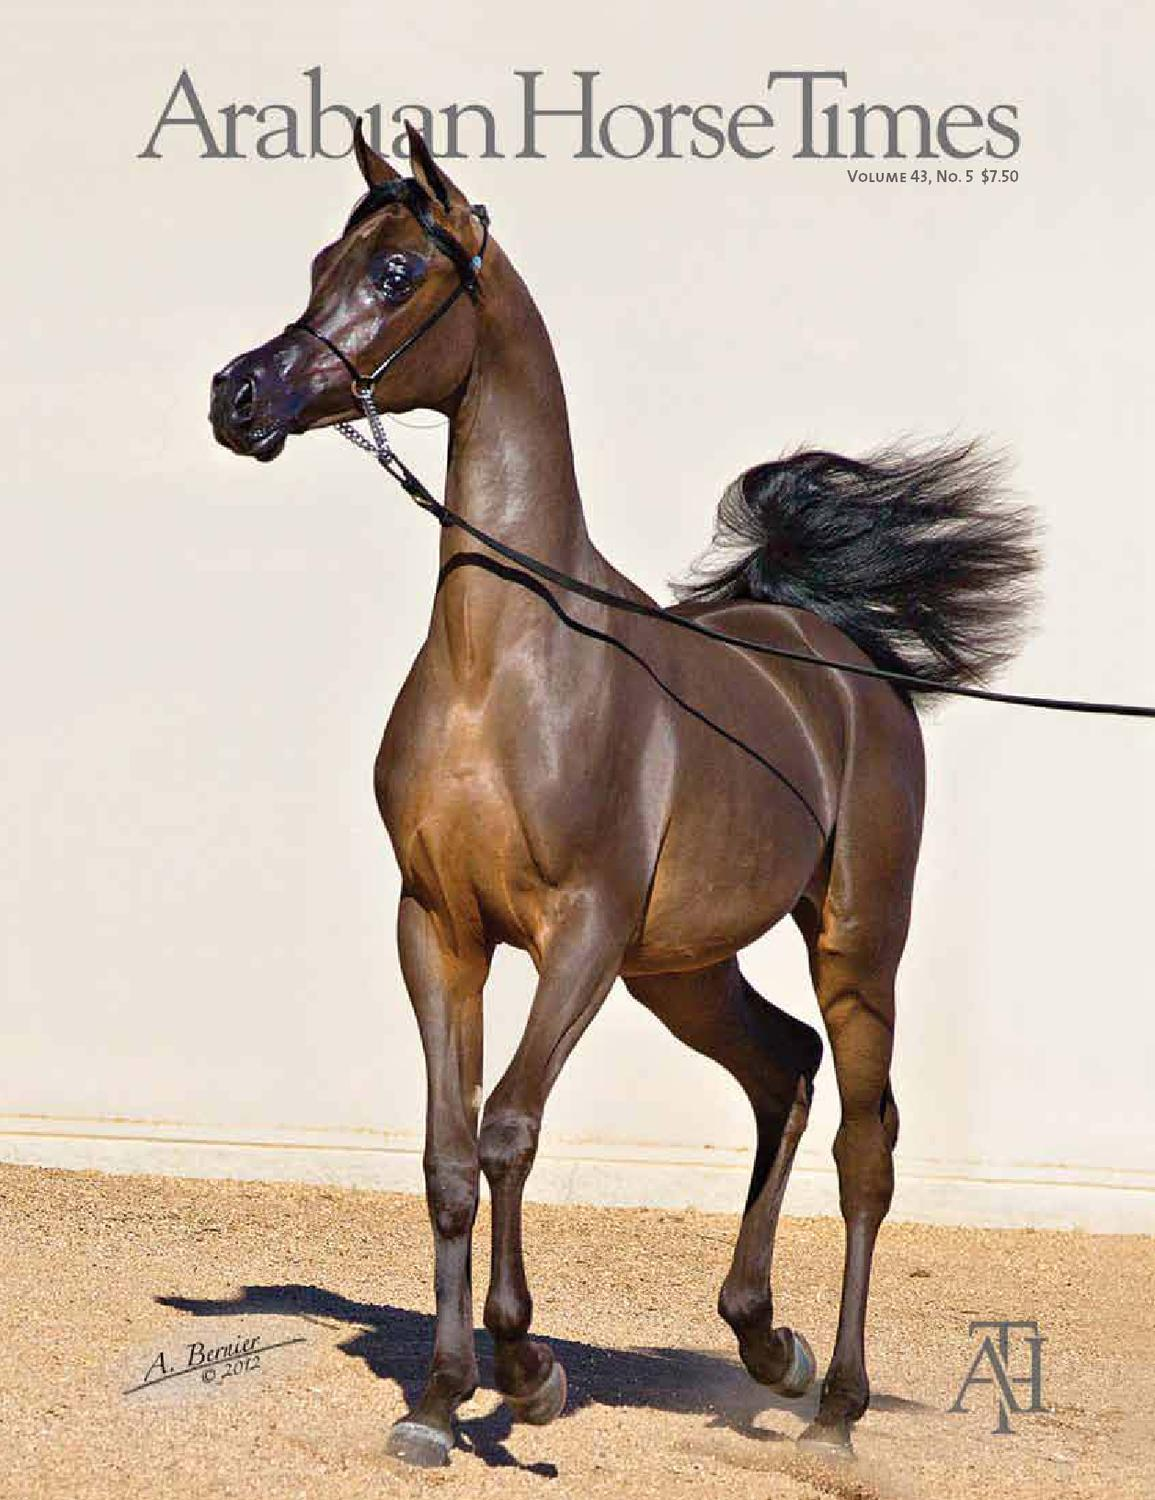 Communication on this topic: How to Care for an Arabian Horse, how-to-care-for-an-arabian-horse/